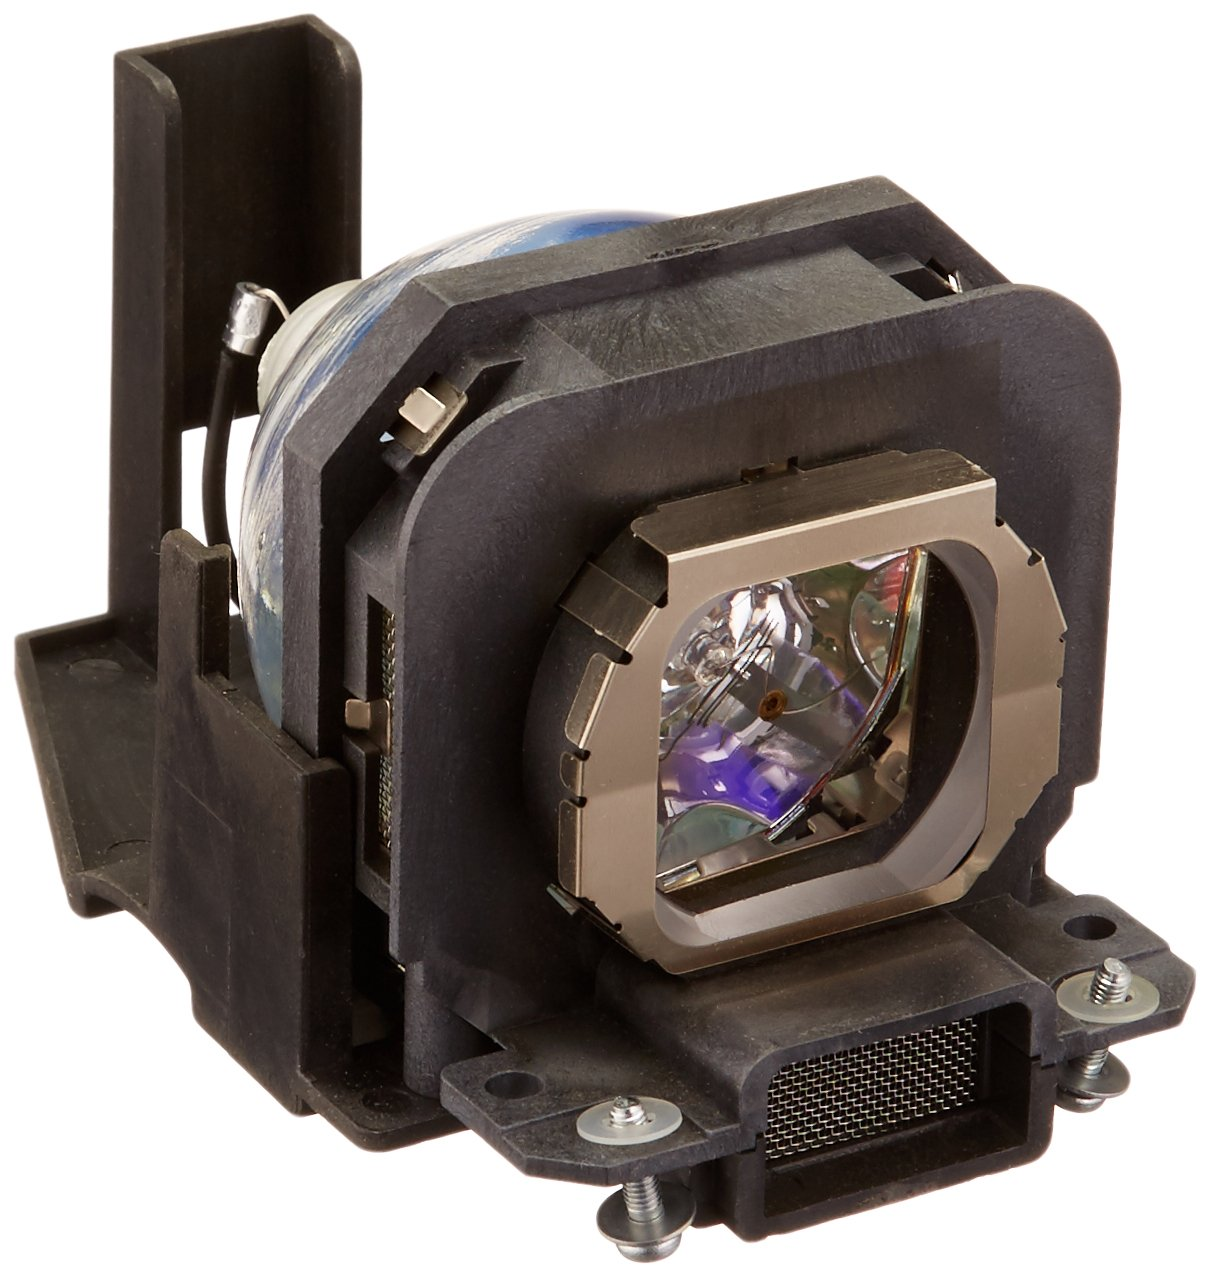 eReplacements ET-LAX100-ER Projector Lamp for Panasonic by eReplacements